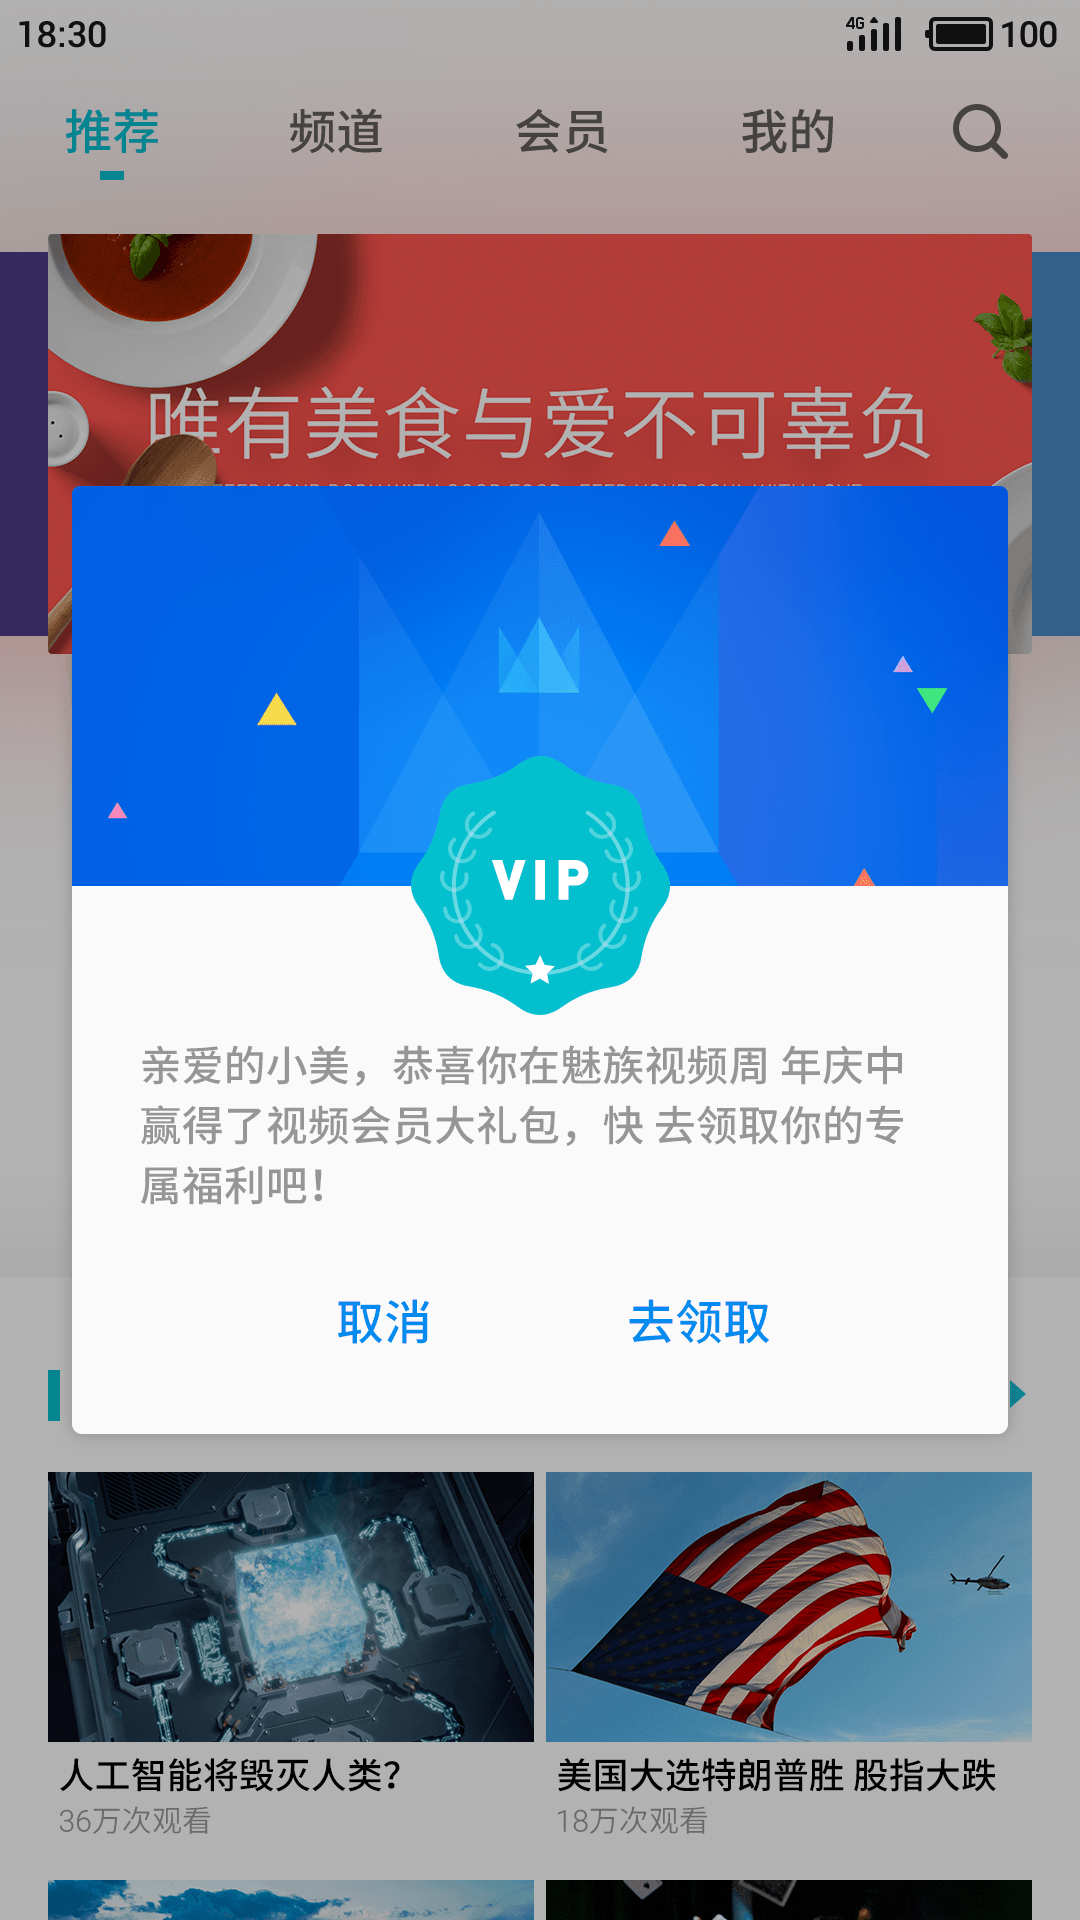 A主页_2_1920.png